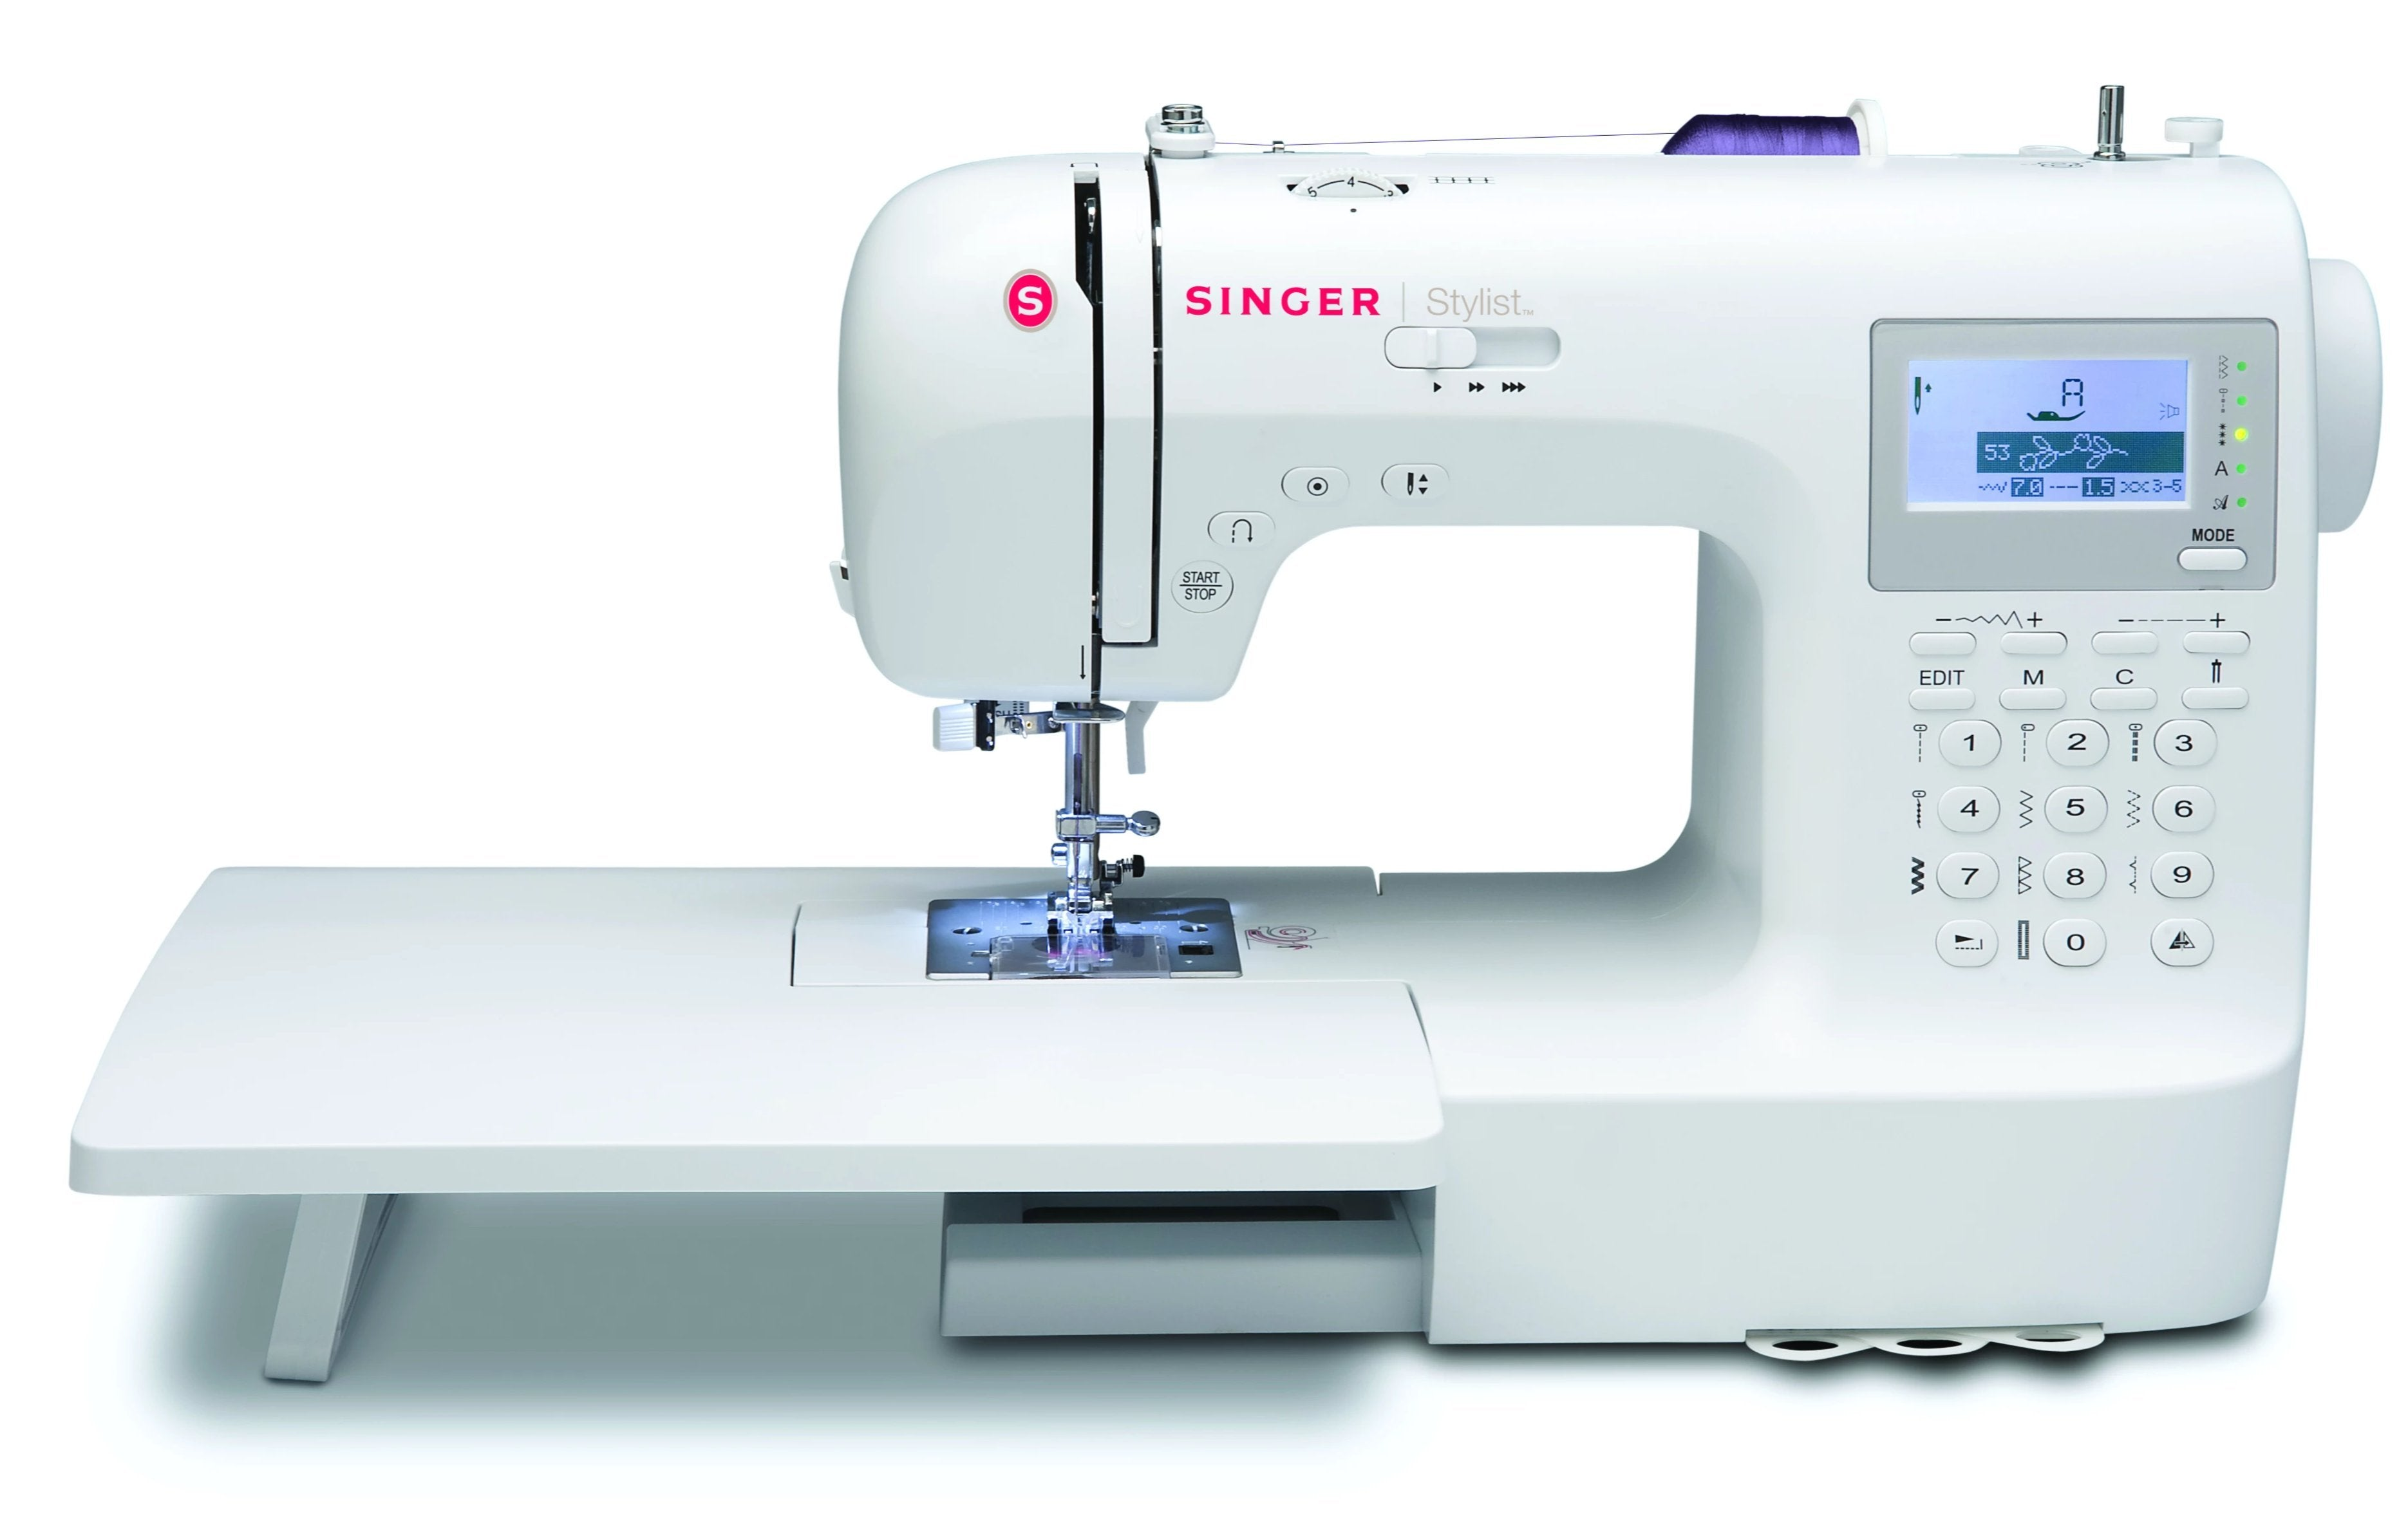 Singer Stylist 9100 - Professional Sewing with 2 alphabet fonts + Free Extension Table * Black Friday - Limited Stock *